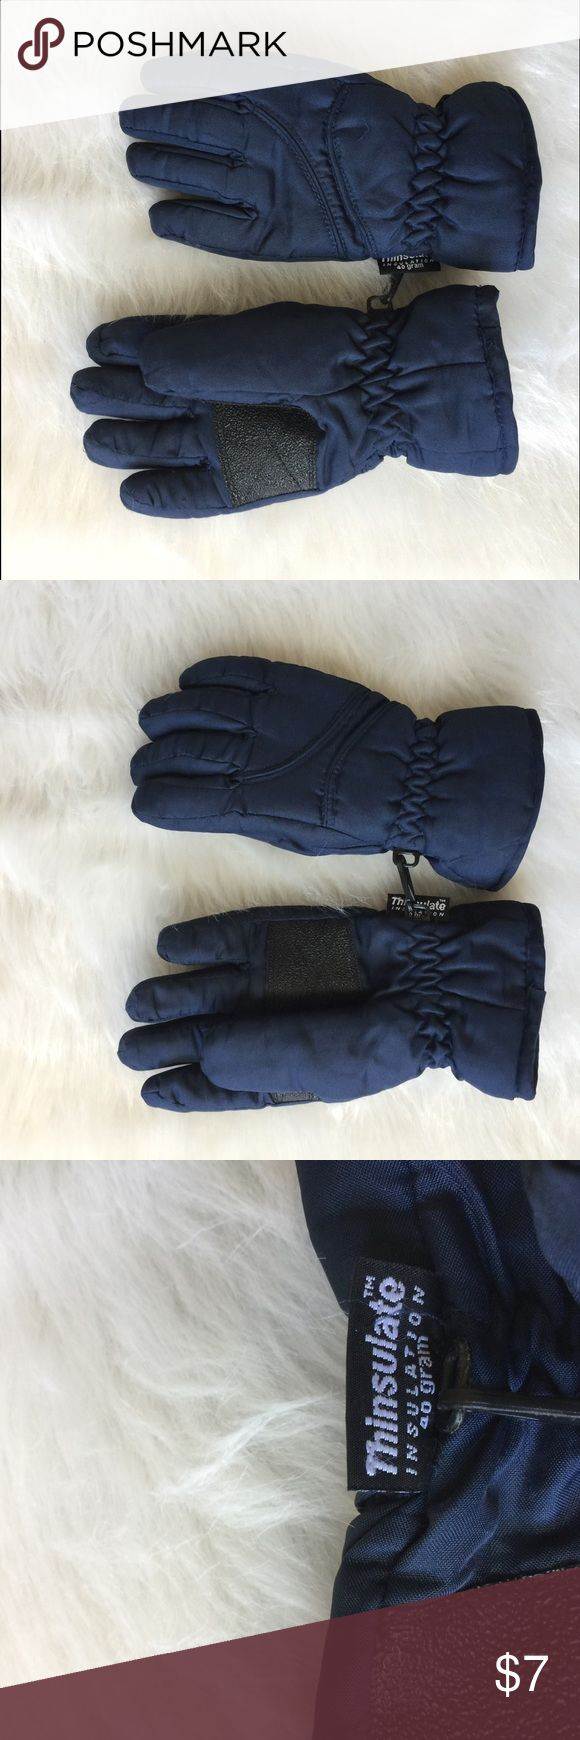 Thinsulate Boys 6/7 Snow gloves Mittens blue In great condition! Thinsulate gloves, 40 gram Accessories Mittens